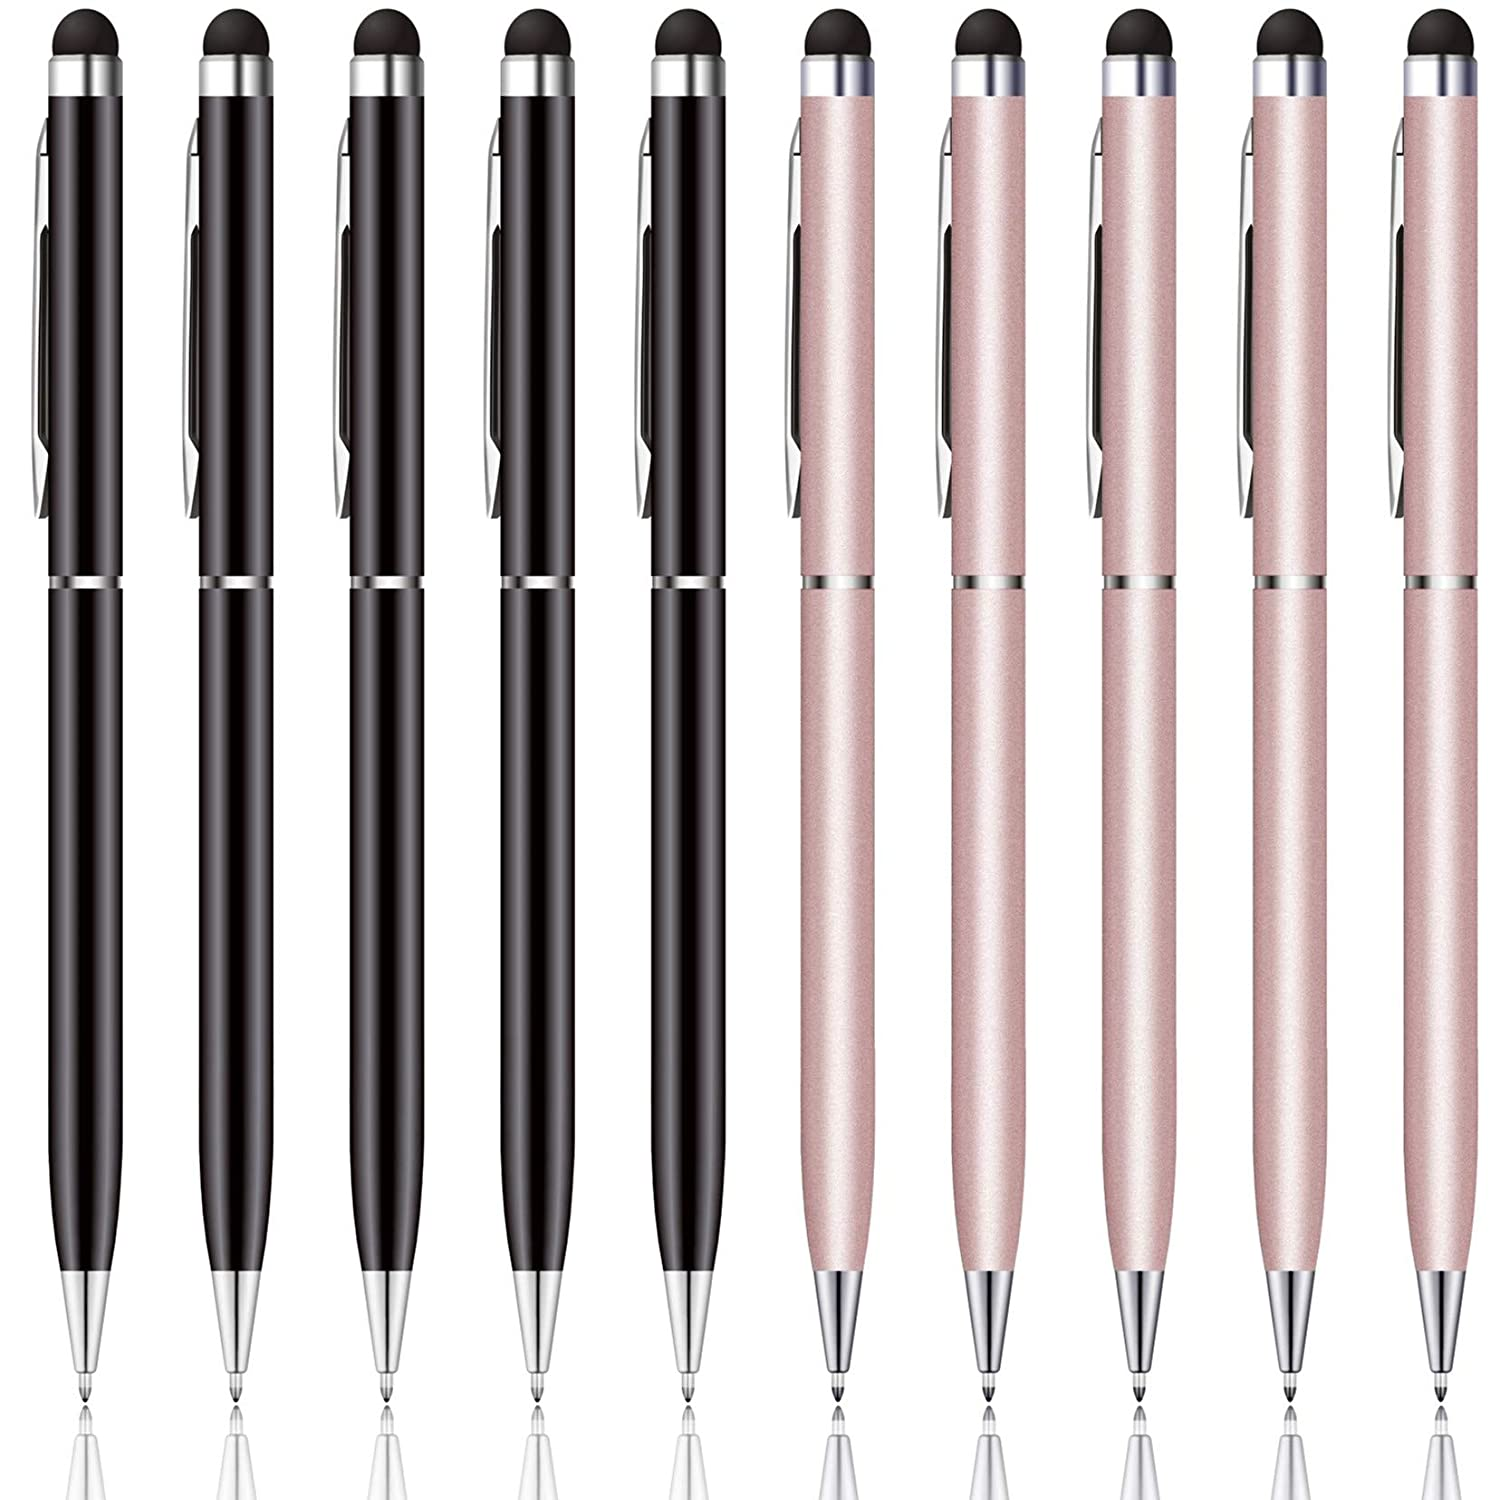 anngrowy Stylus Pens for Touch Screens Devices Universal Capacitive Stylus Ballpoint Pen for iPad Cell Phones Tablets Laptops All Capacitive Touch Screens, 2 in 1 Stylus Pen